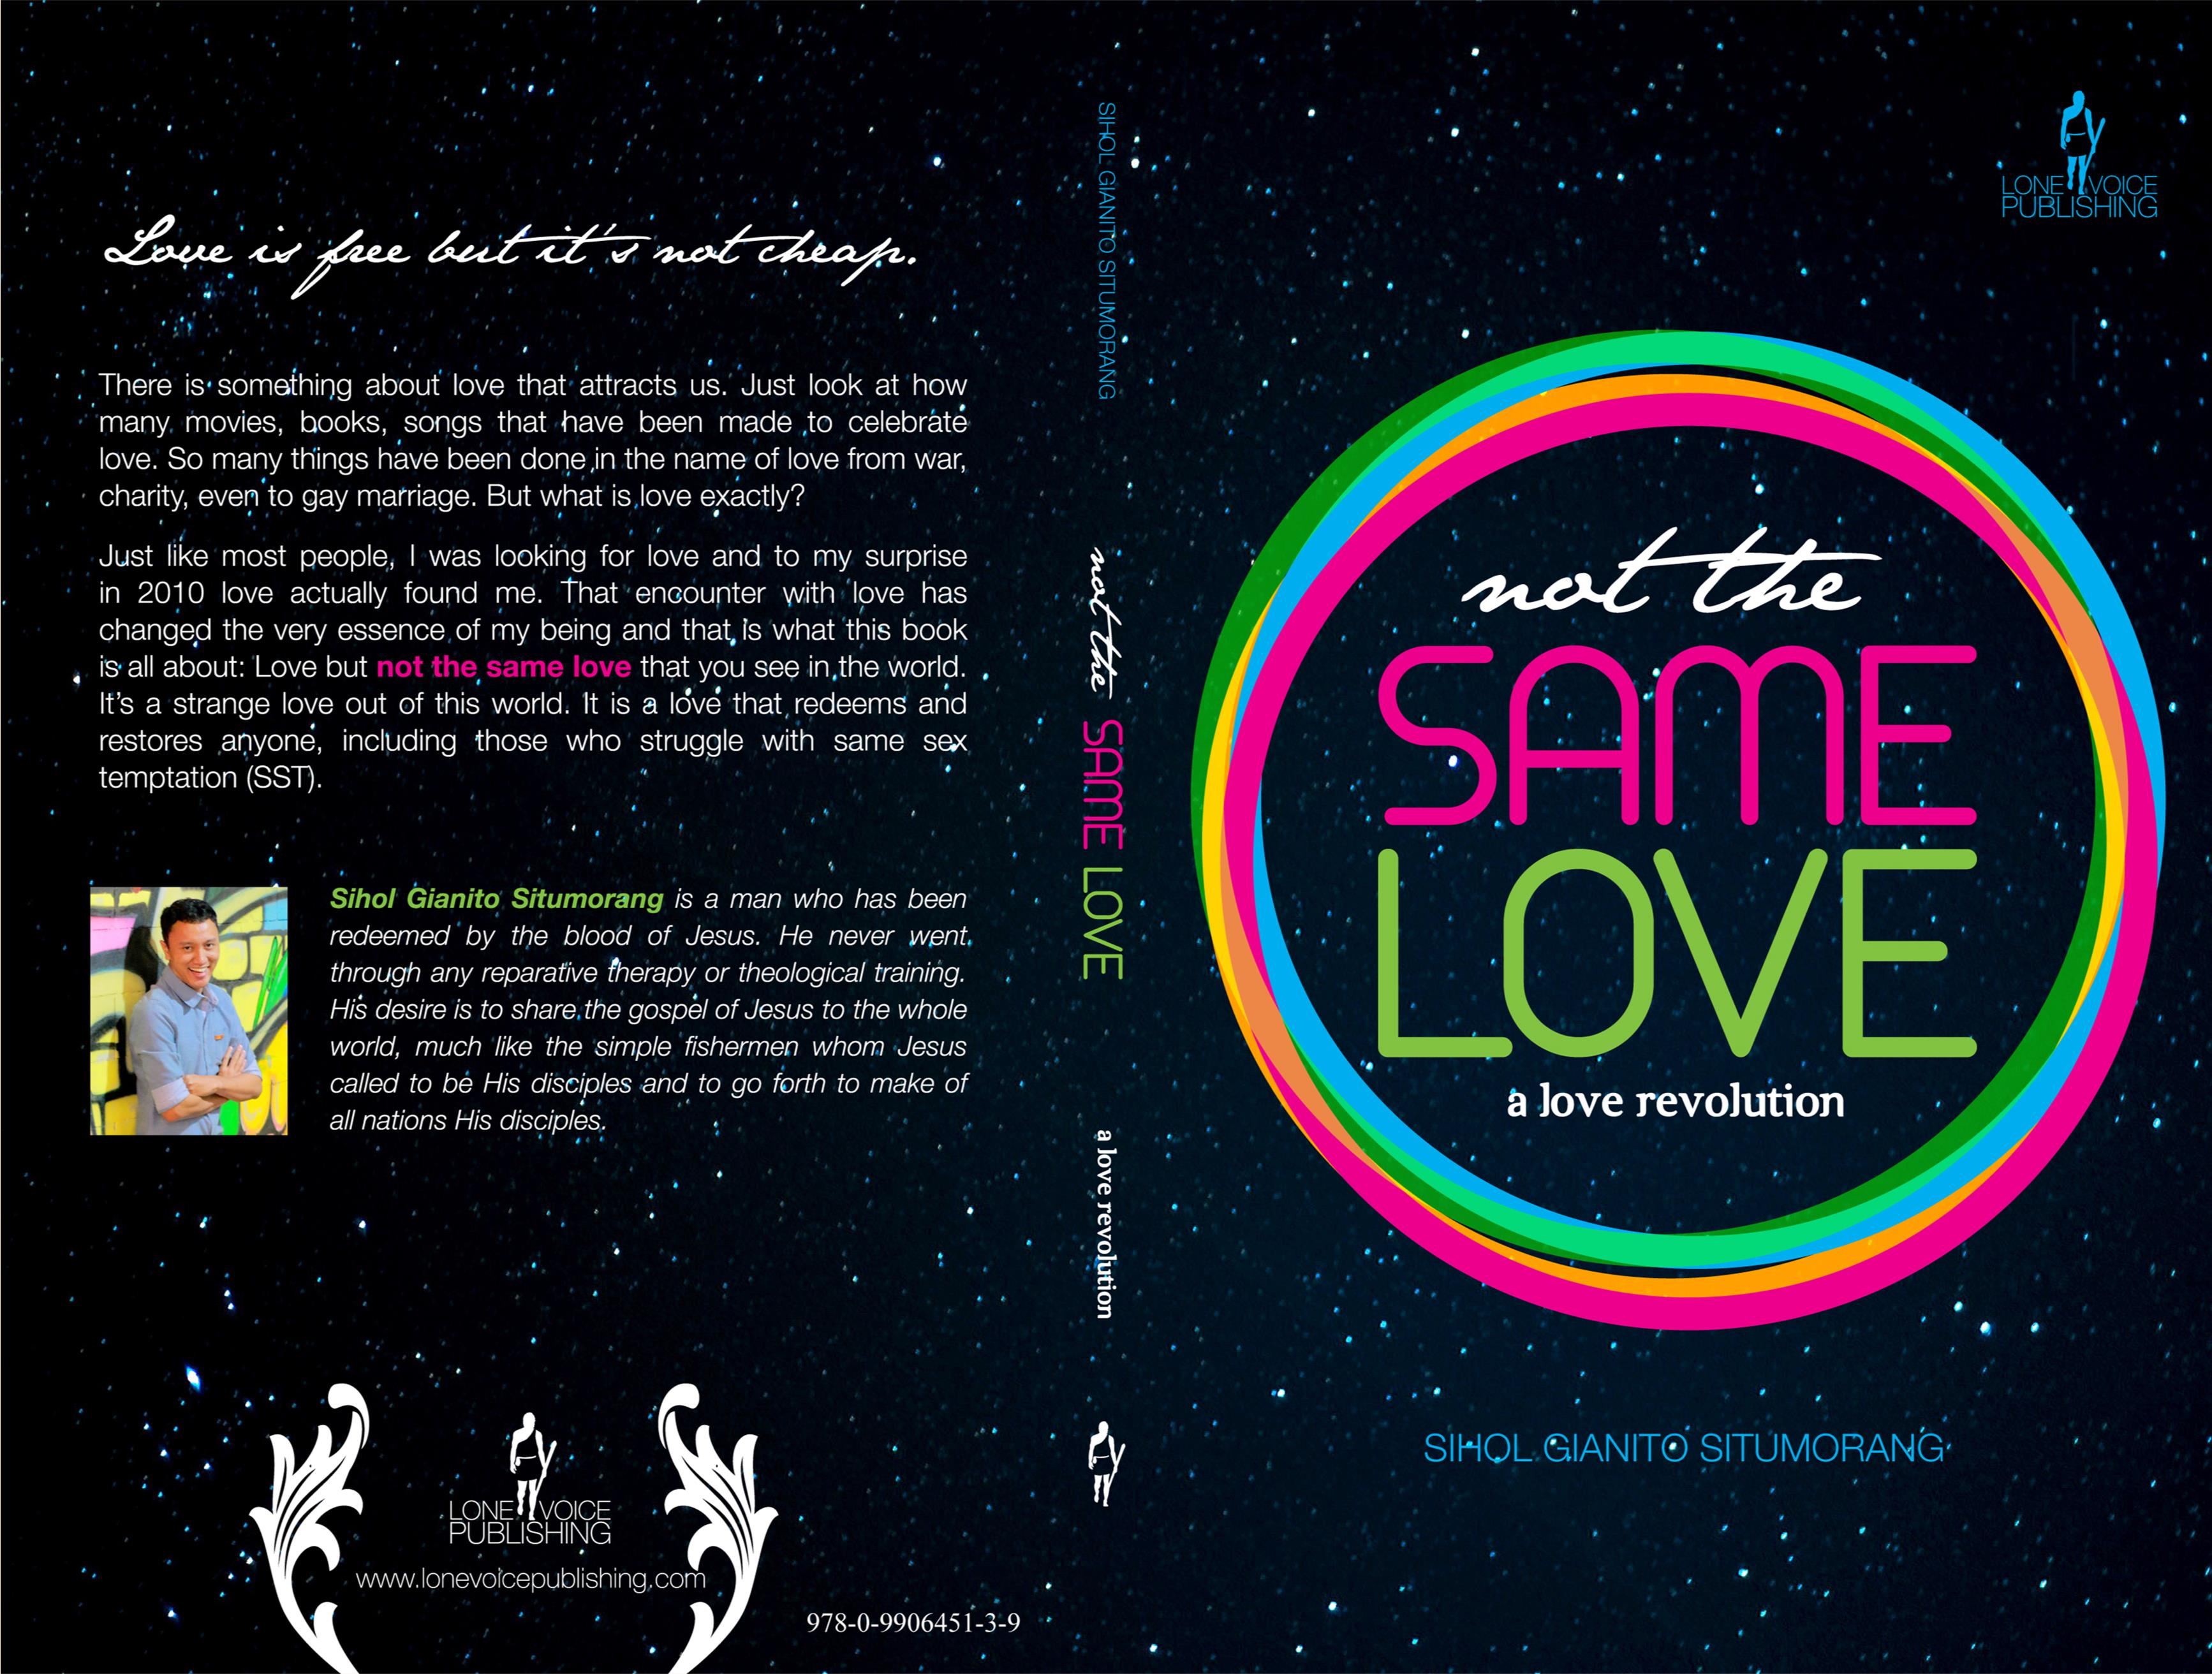 NOT THE SAME LOVE: A Love Revolution cover image